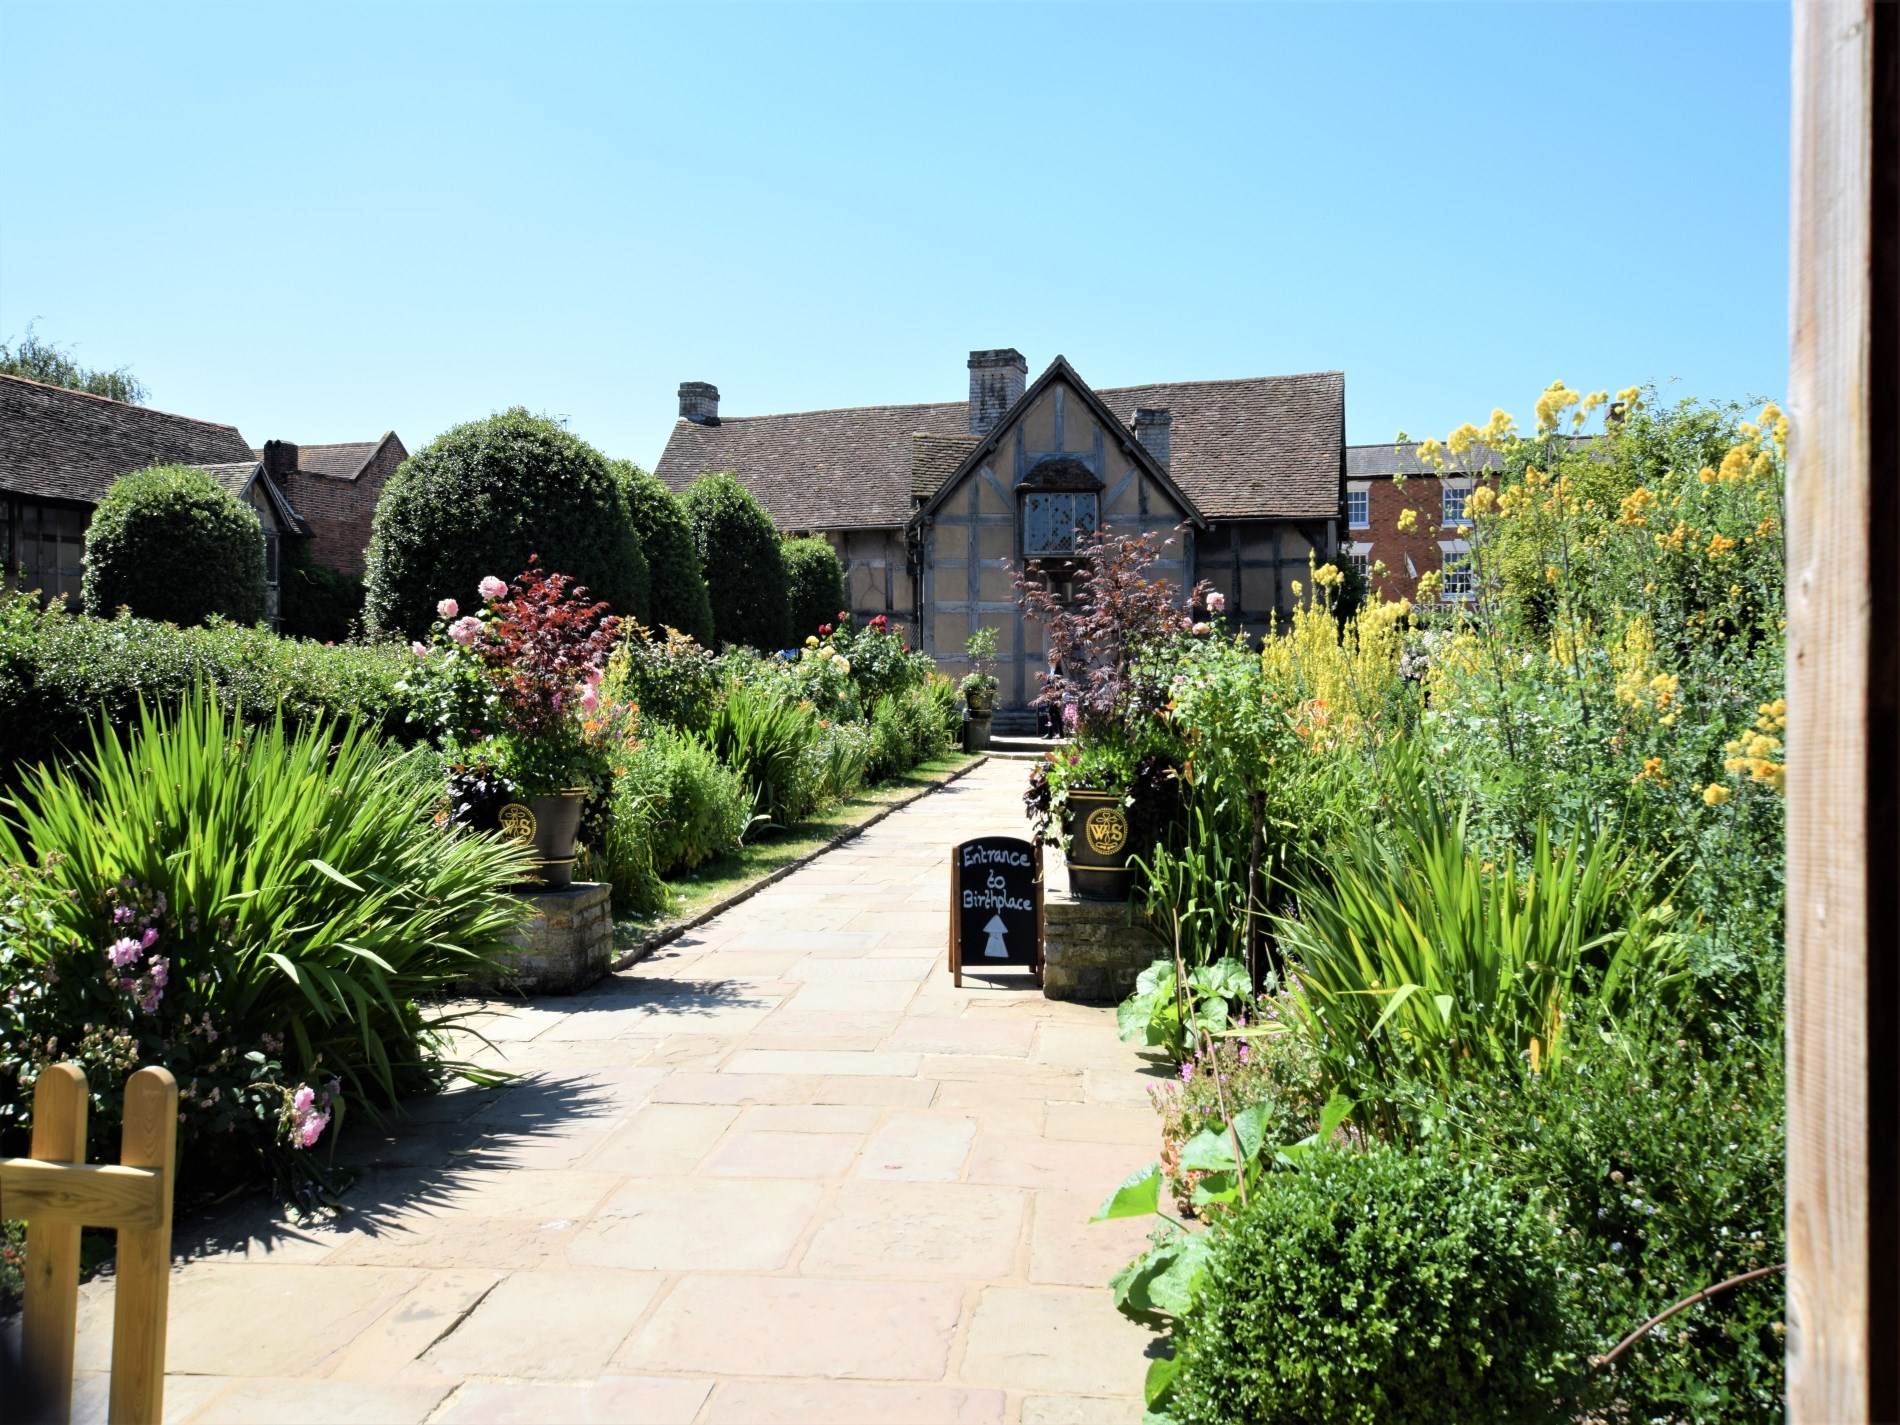 Shakespeare's birthplace is a short walk away